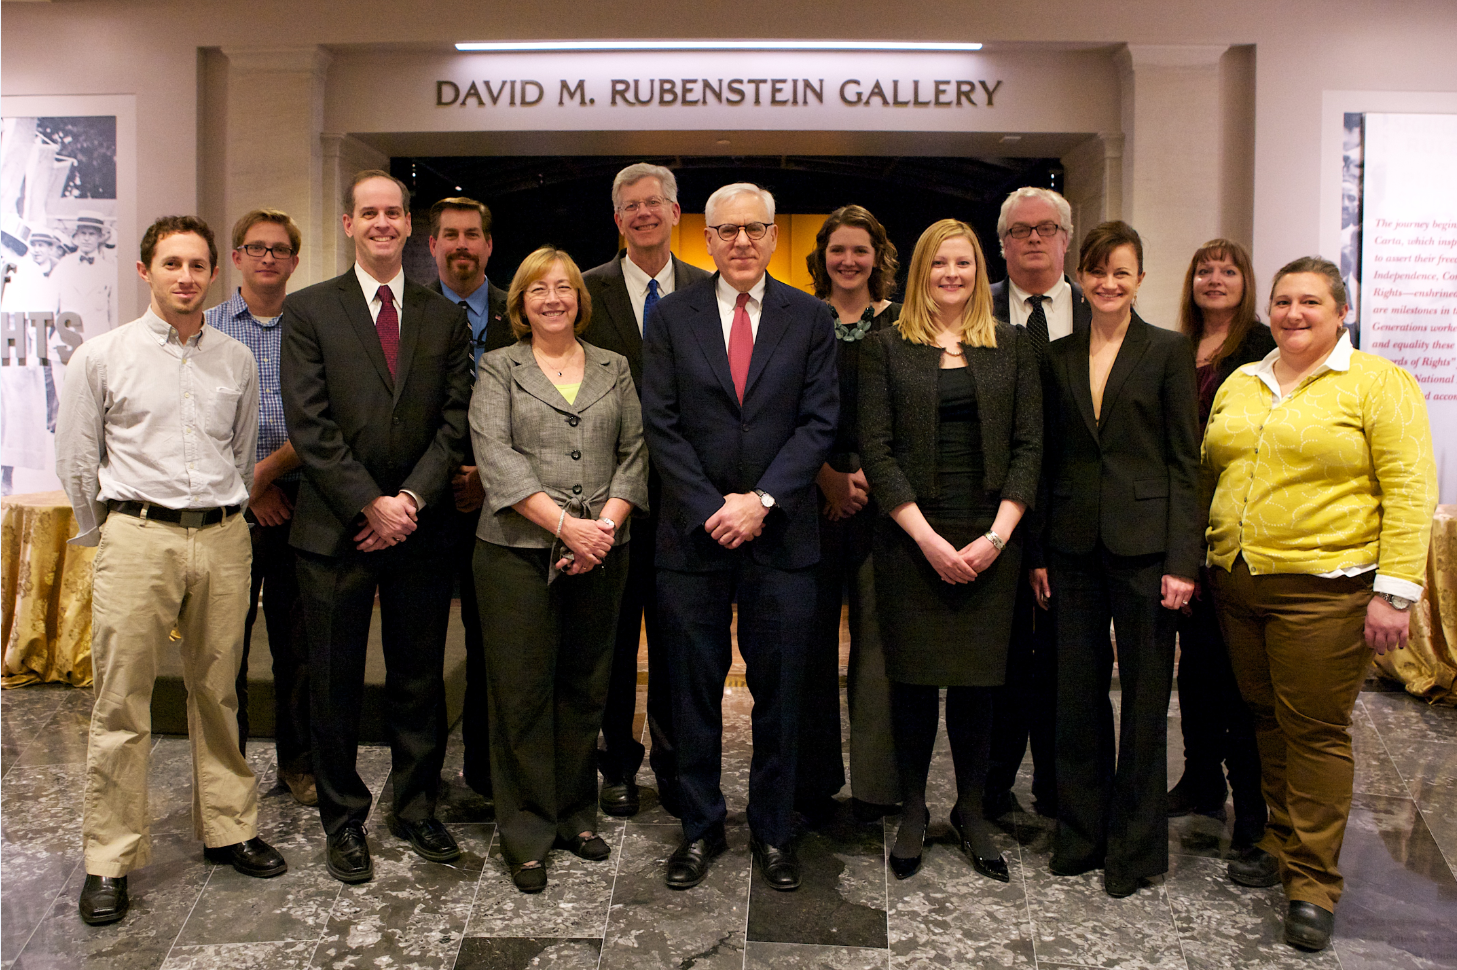 NARA staff with David M. Rubenstein